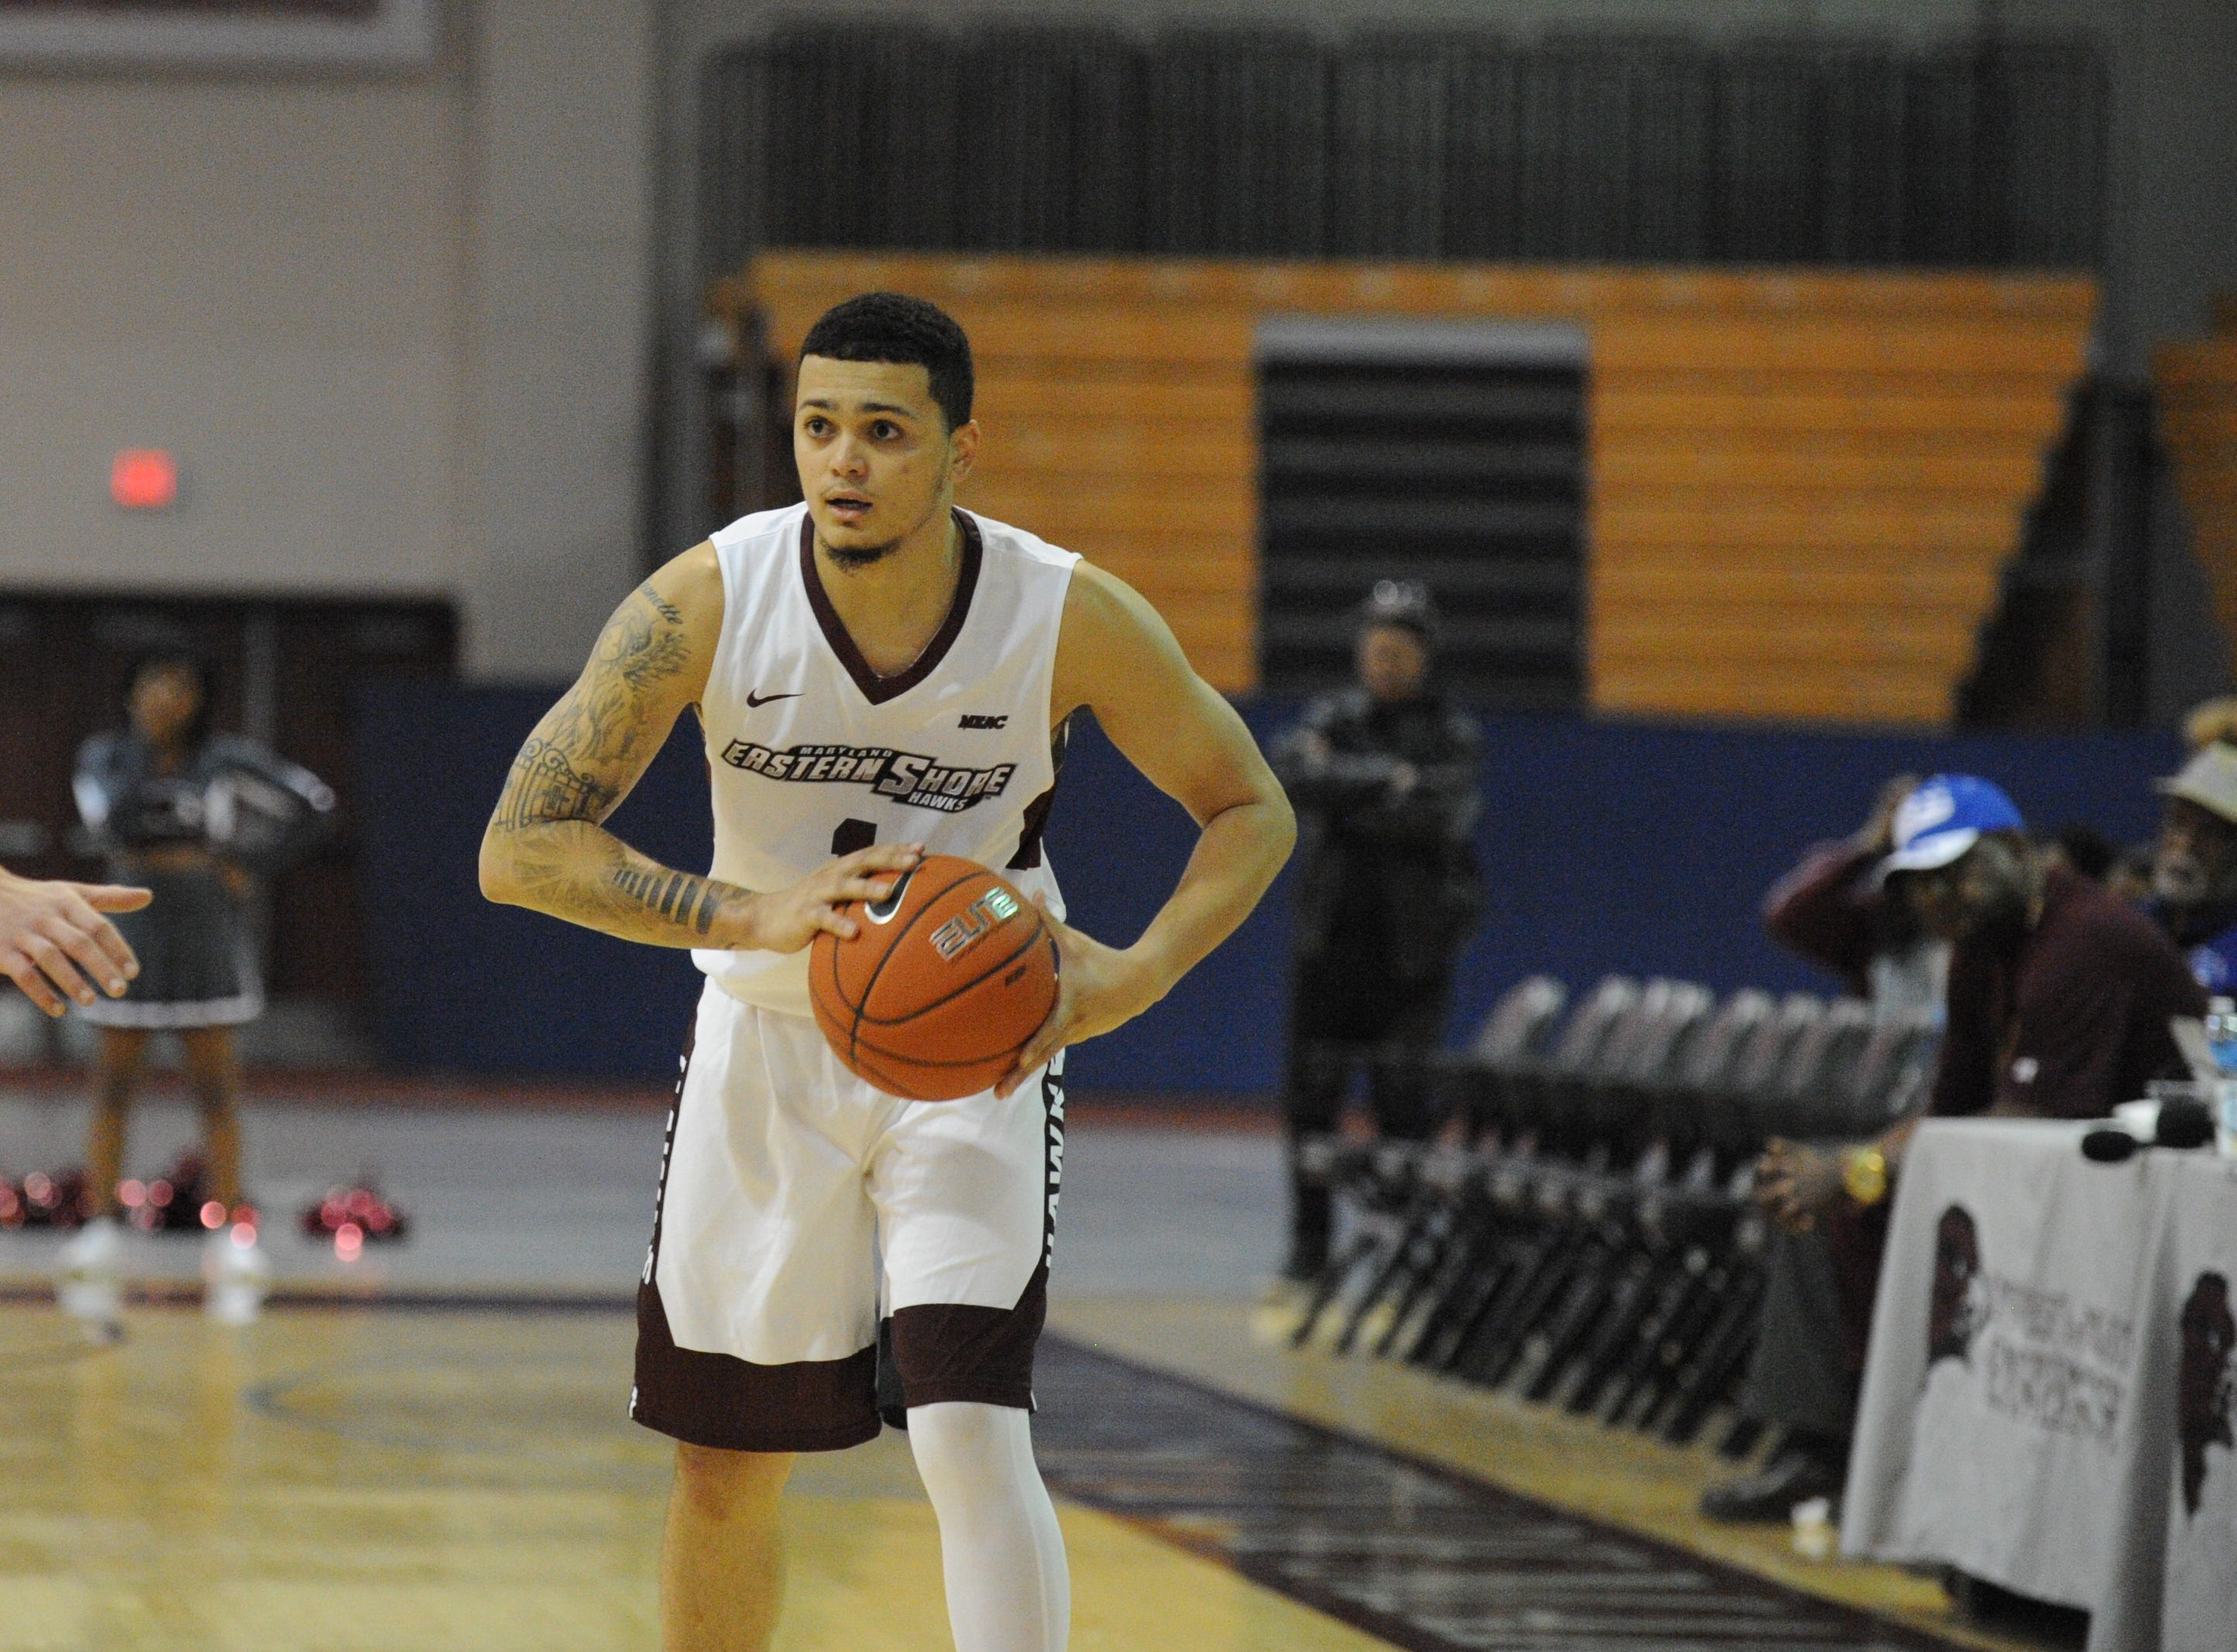 University of Maryland Eastern Shore guard Ryan Andino looks to pass against the University of Delaware on Friday, Nov. 30, 2018. The Blue Hens beat the Hawks, 71-62.